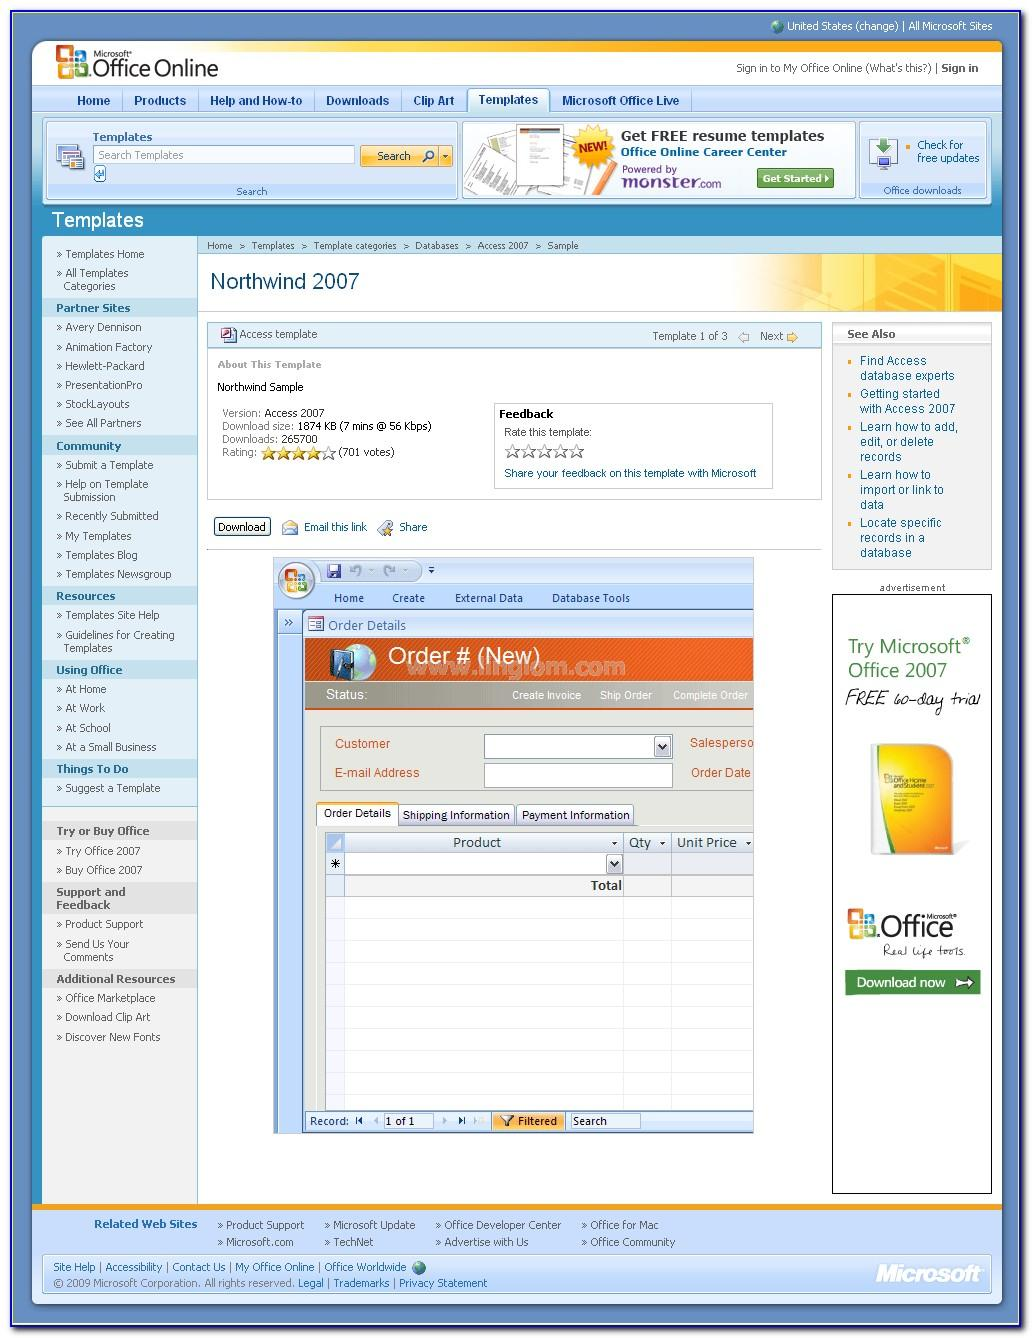 Microsoft Access 2007 Employee Database Template Free Download